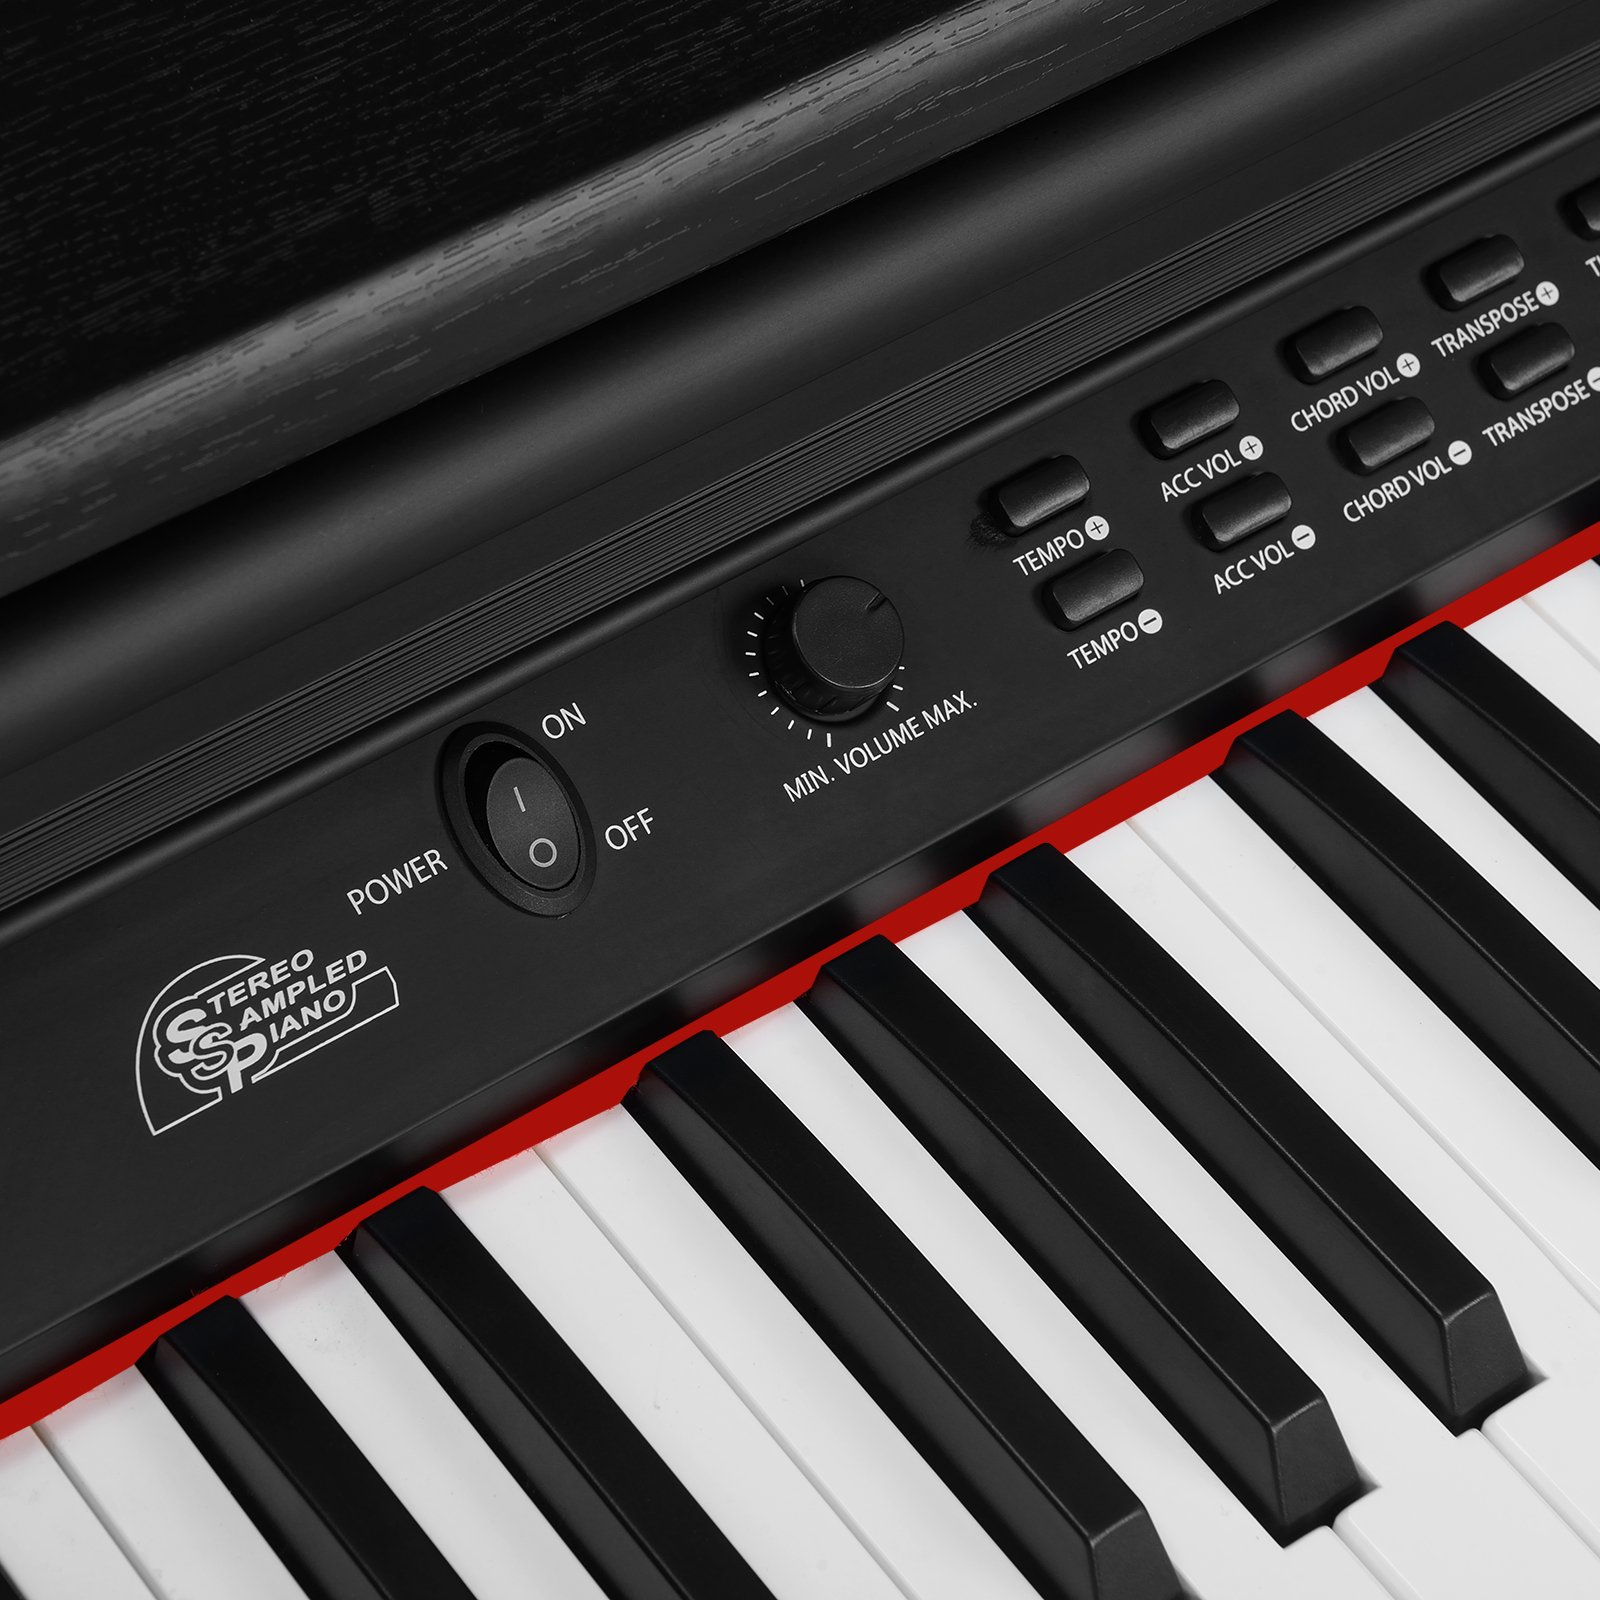 LAGRIMA Digital Piano, 88 Keys Electric Keyboard Piano for Beginner(Kids/Adults) w/Music Stand+Power Adapter+3 Metal Pedals+Instruction Book, 2 Headphone Jack/Midi/USB Audio Output by LAGRIMA (Image #3)